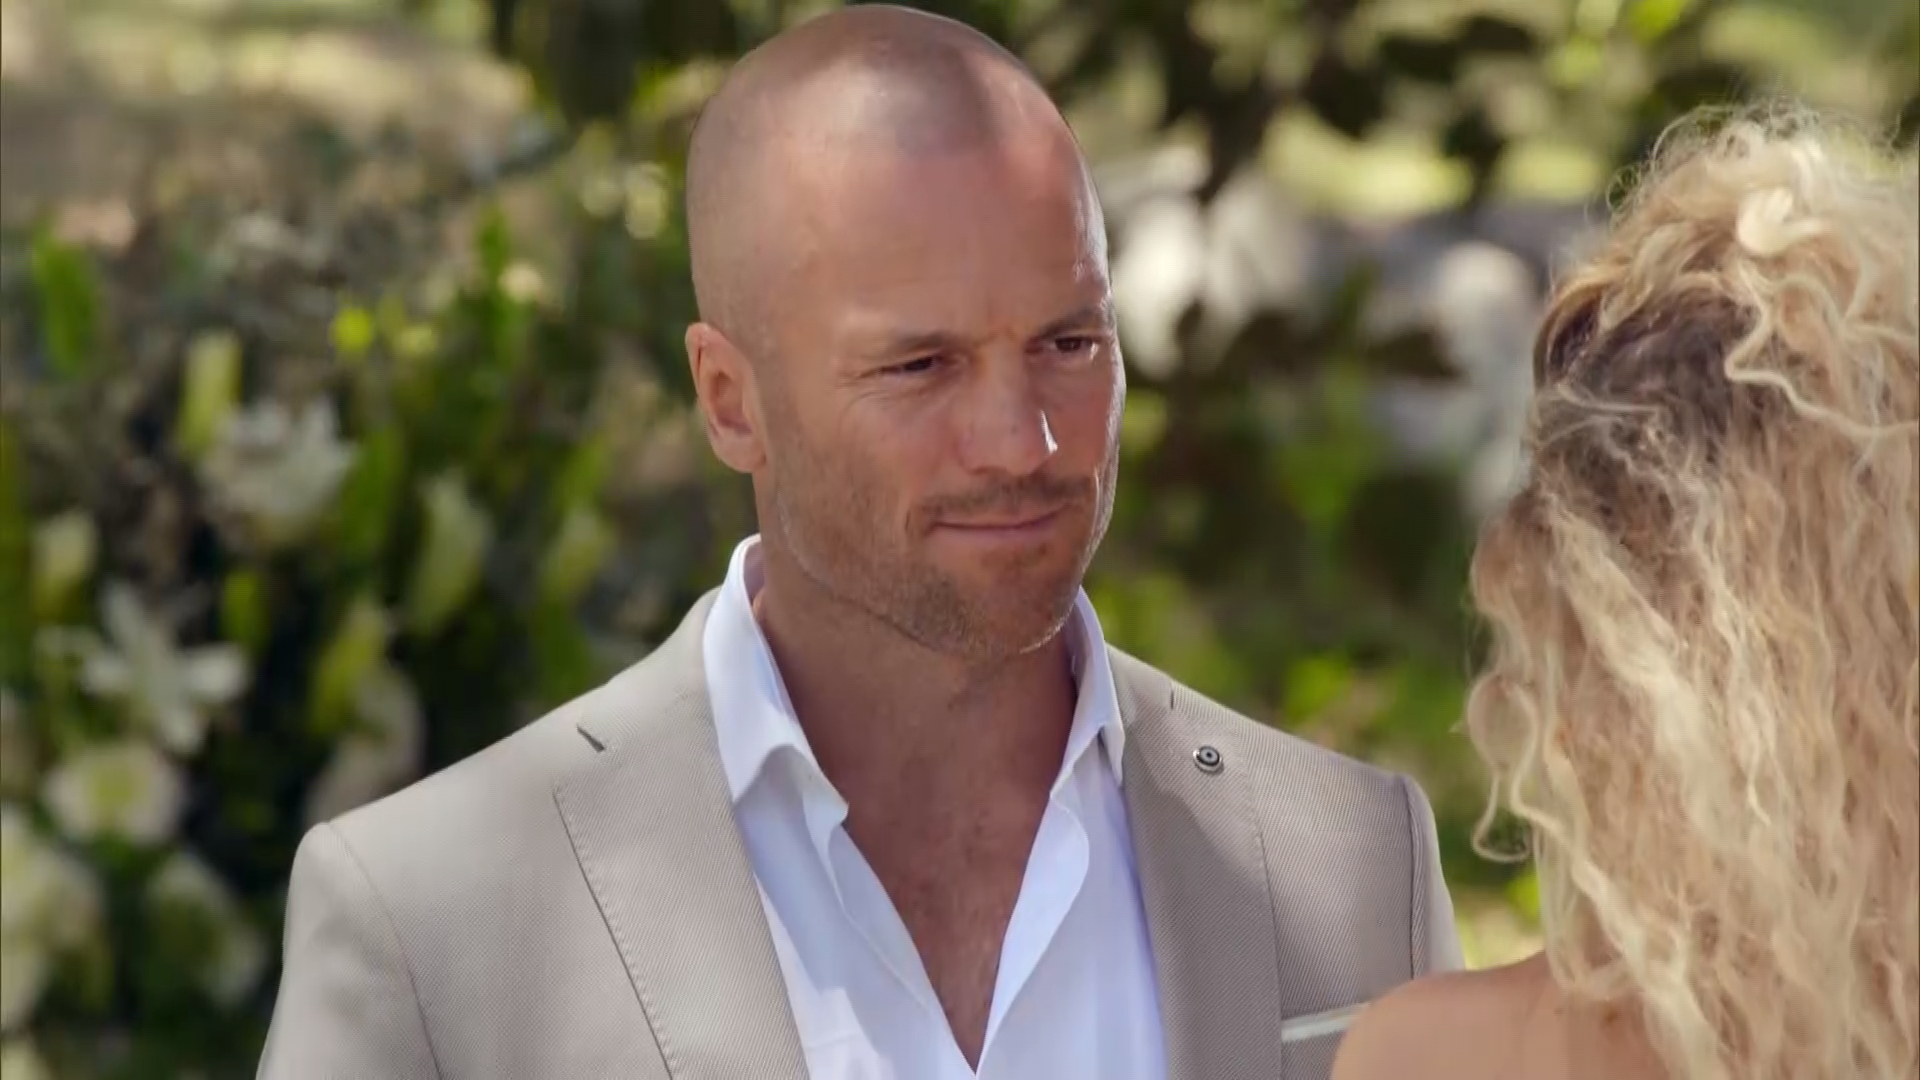 Episode 39 Recap: Heidi and Mike are uncertain as they make their Final Vows